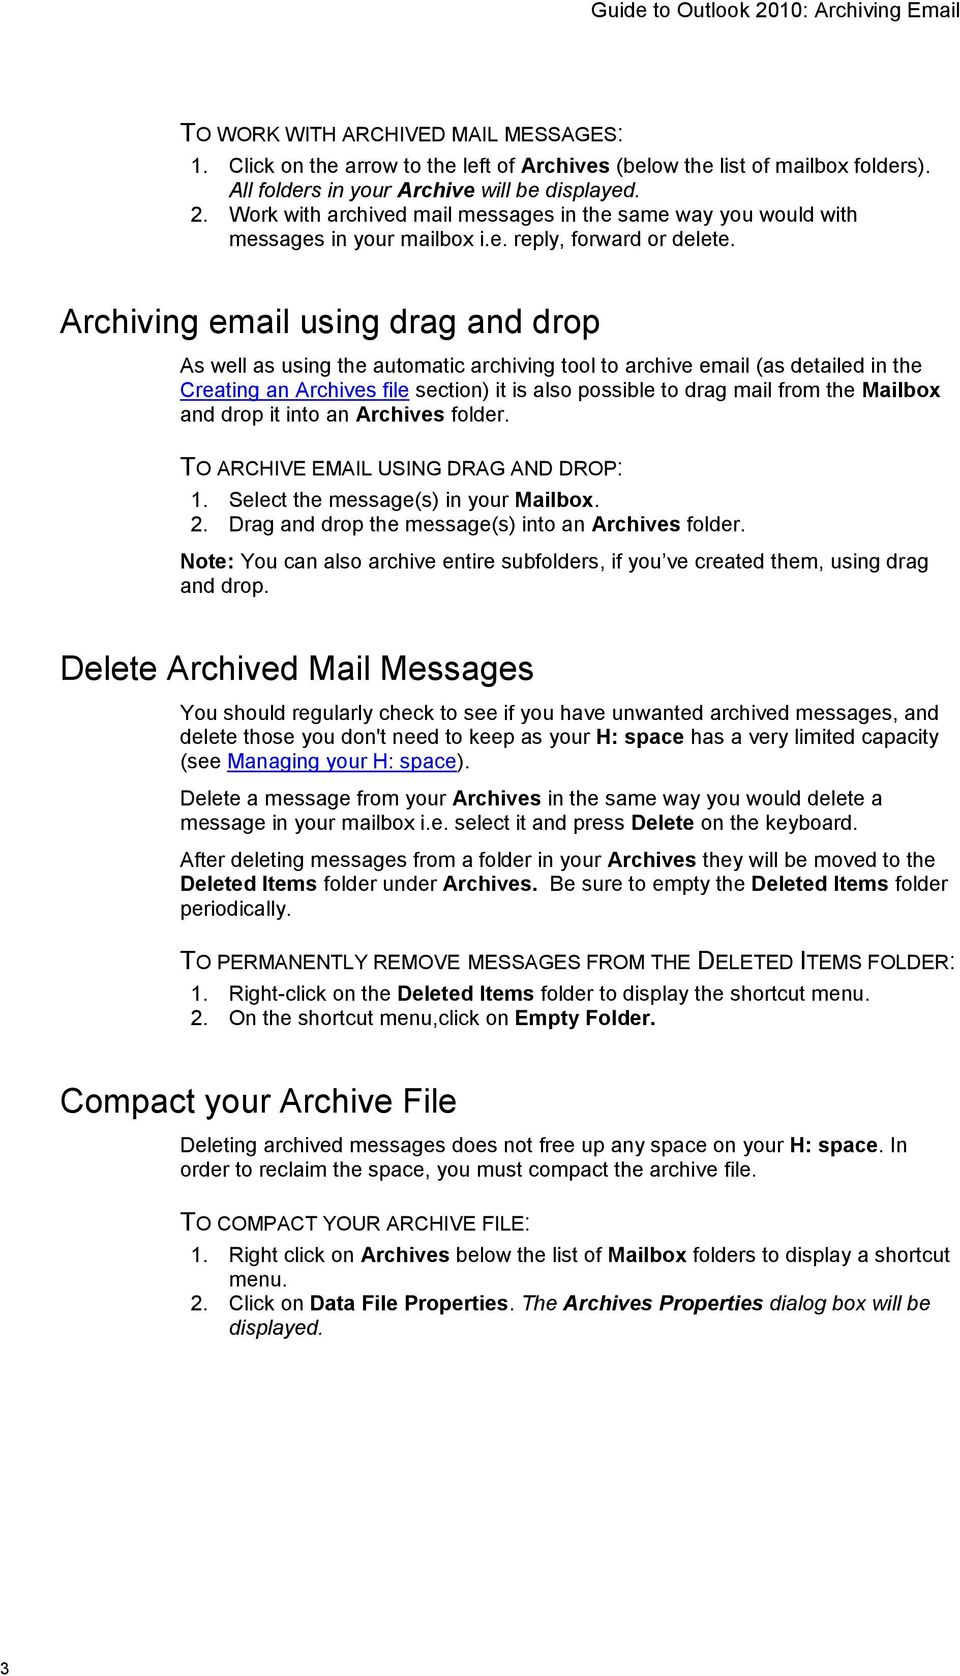 Archiving email using drag and drop As well as using the automatic archiving tool to archive email (as detailed in the Creating an Archives file section) it is also possible to drag mail from the